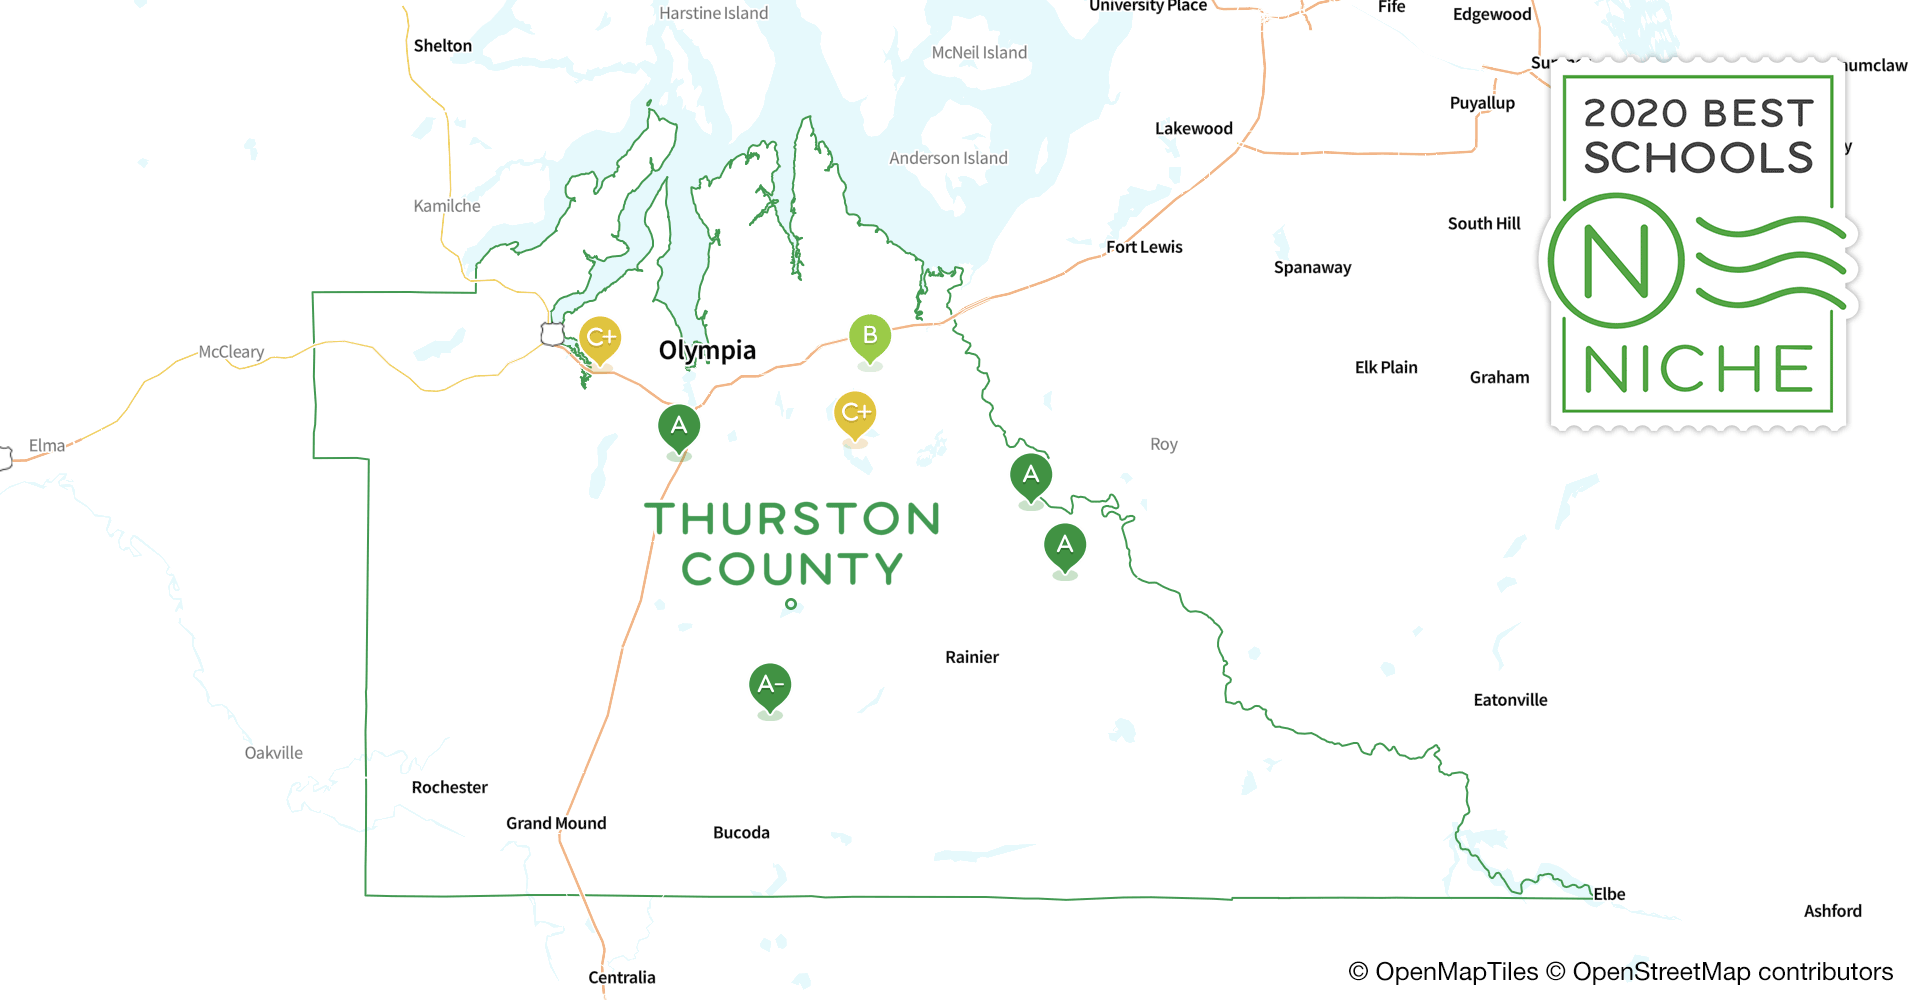 2020 Best Public Elementary Schools in Thurston County, WA